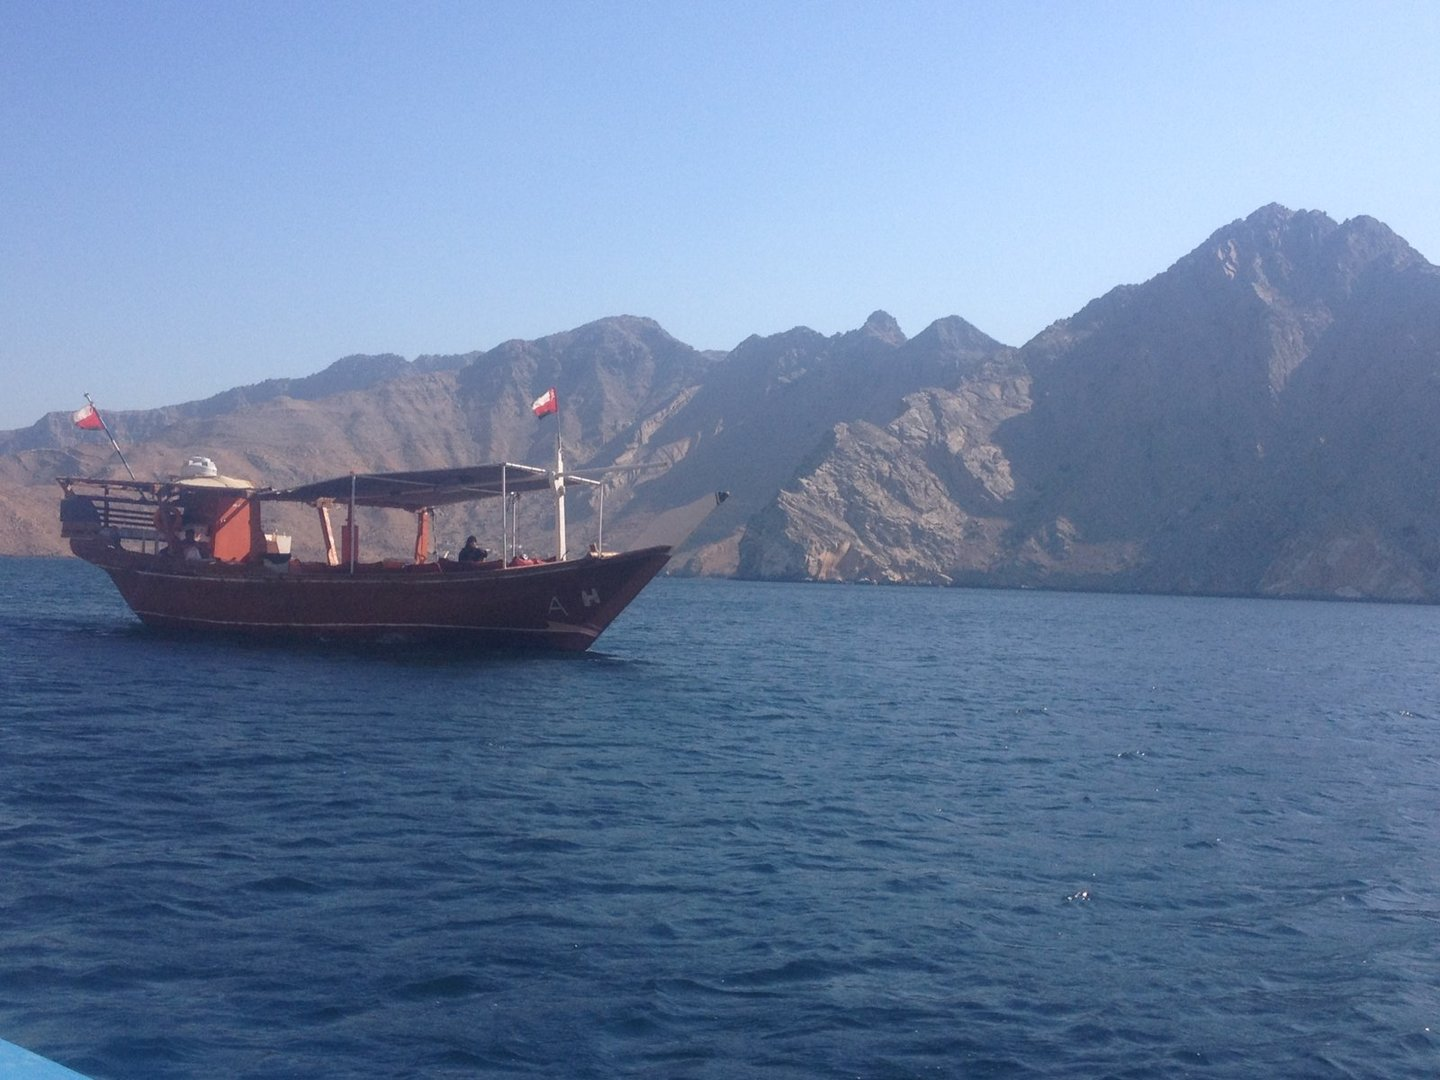 img_0812-jpg.41303_Hitching boats in the Strait of Hormuz   Expat squatters of Oman_Travel Stories_Squat the Planet_12:38 PM